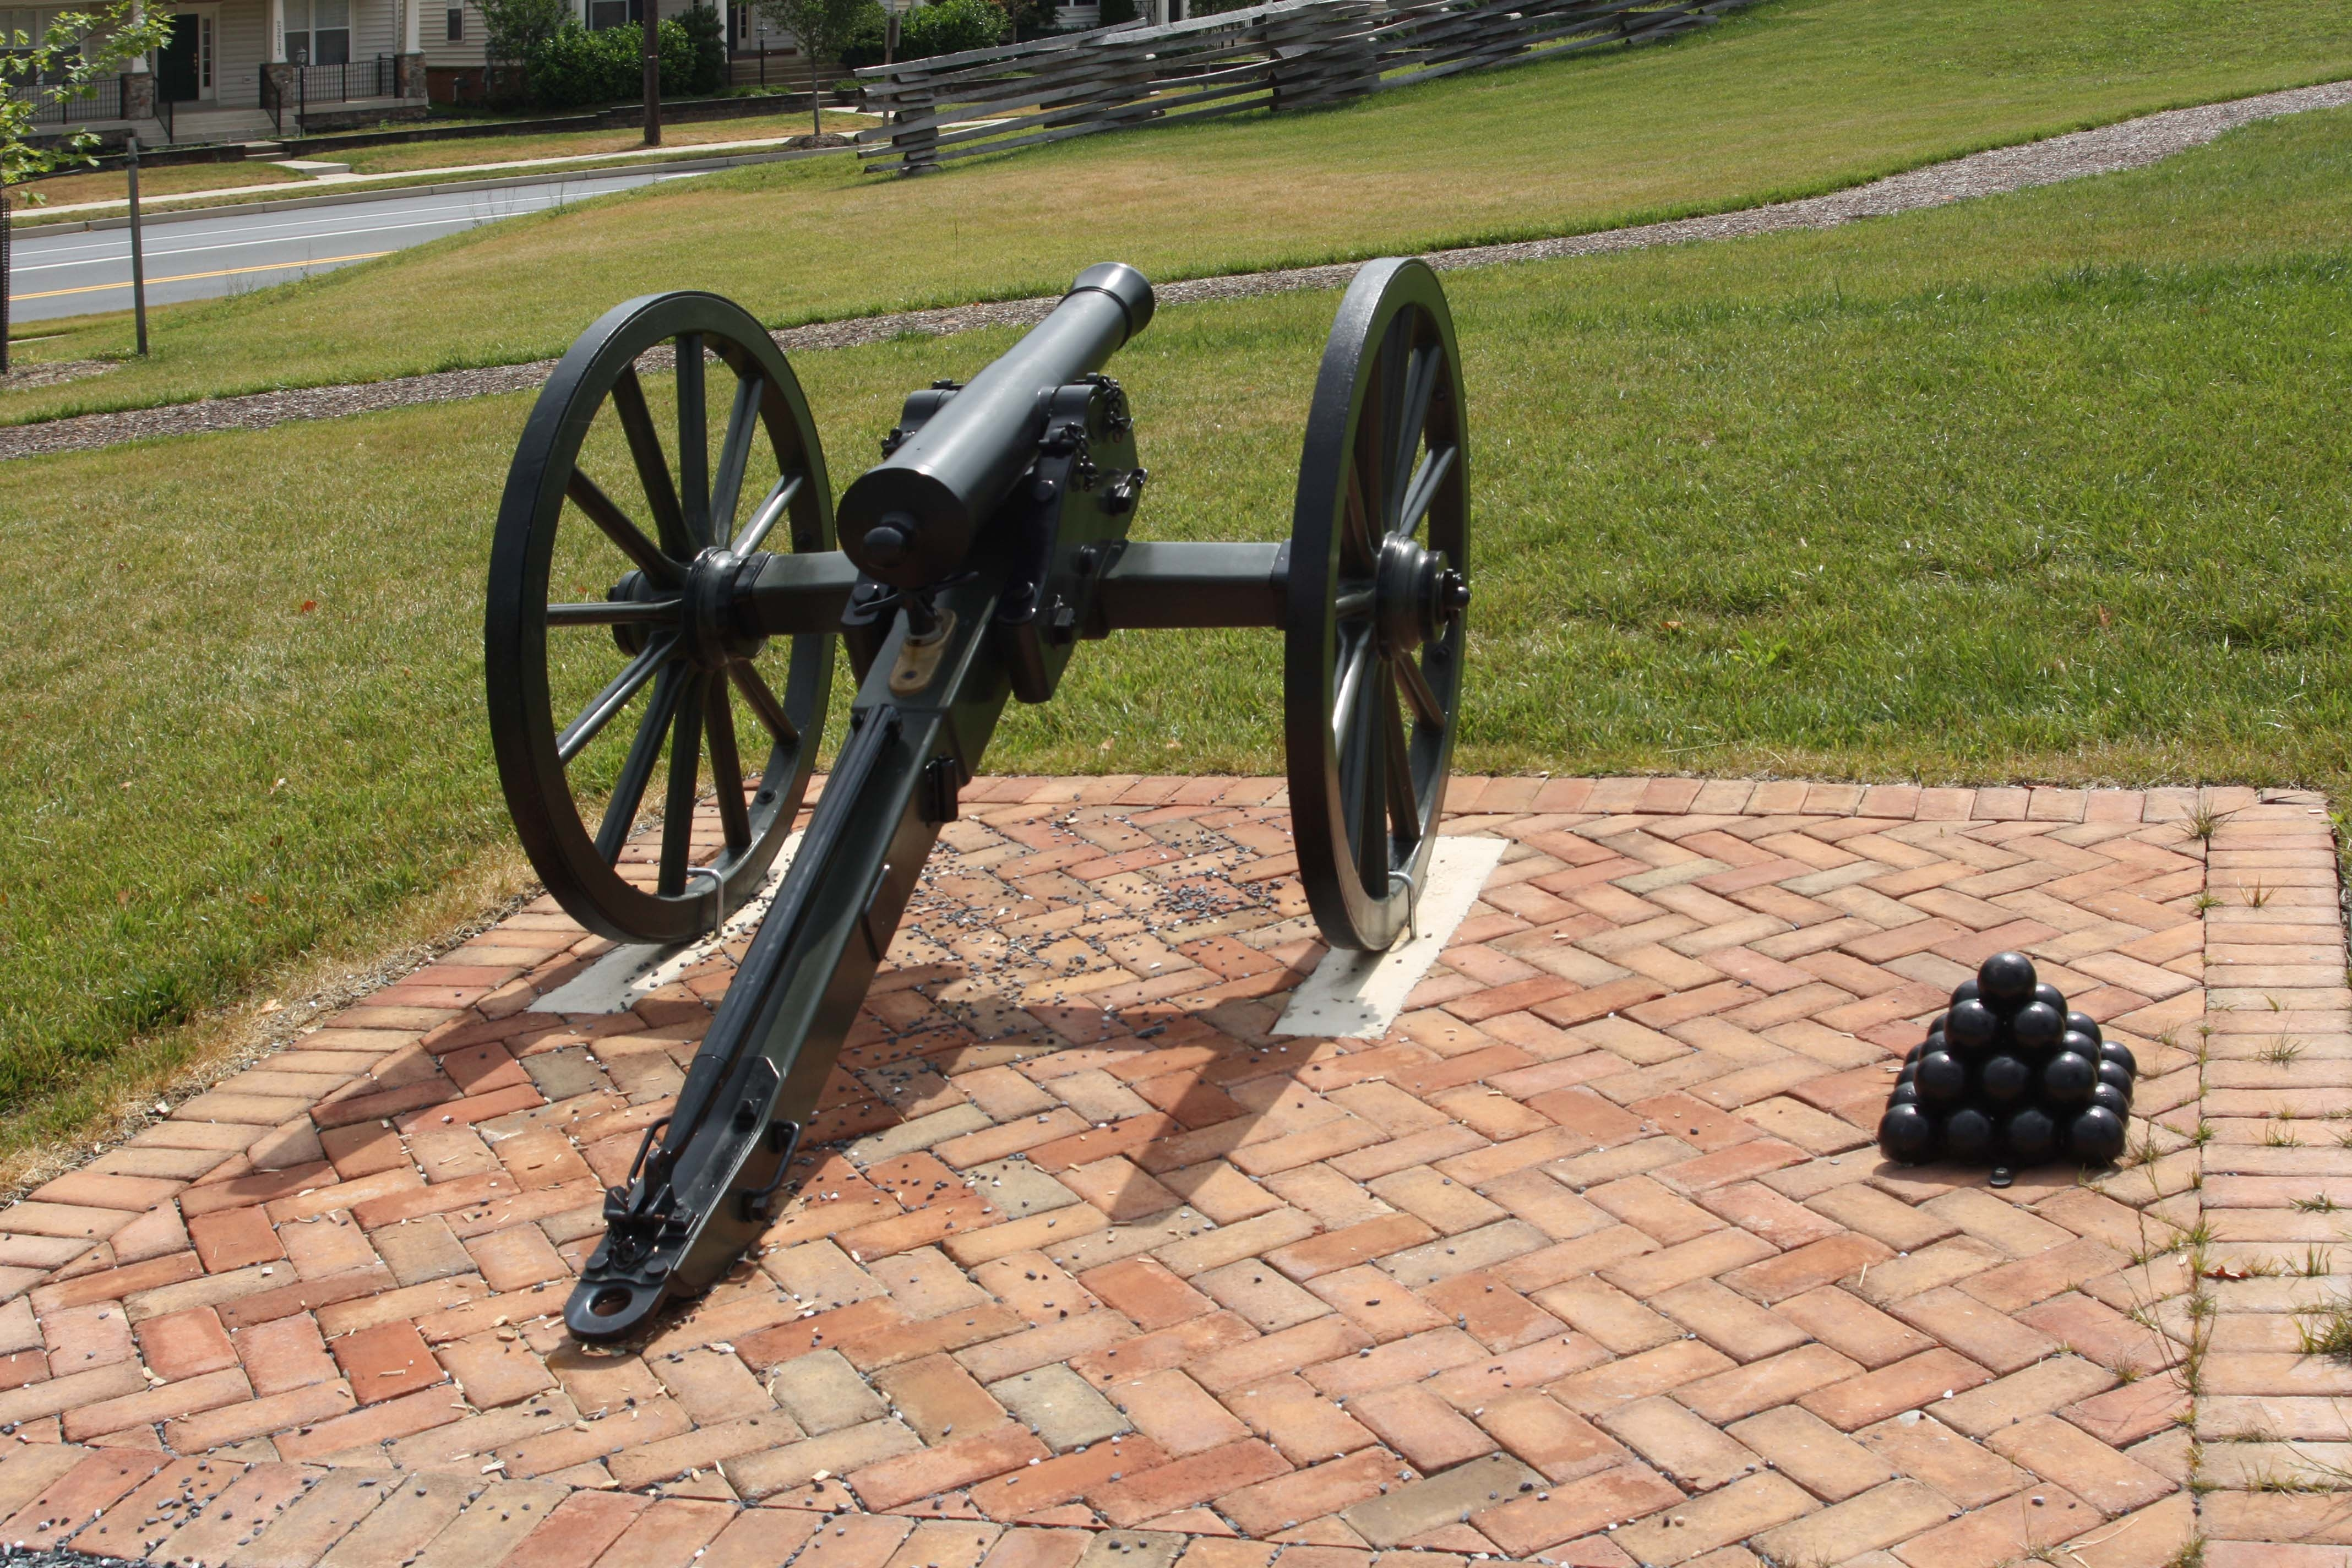 Replica Three-Pounder Cannon as mentioned